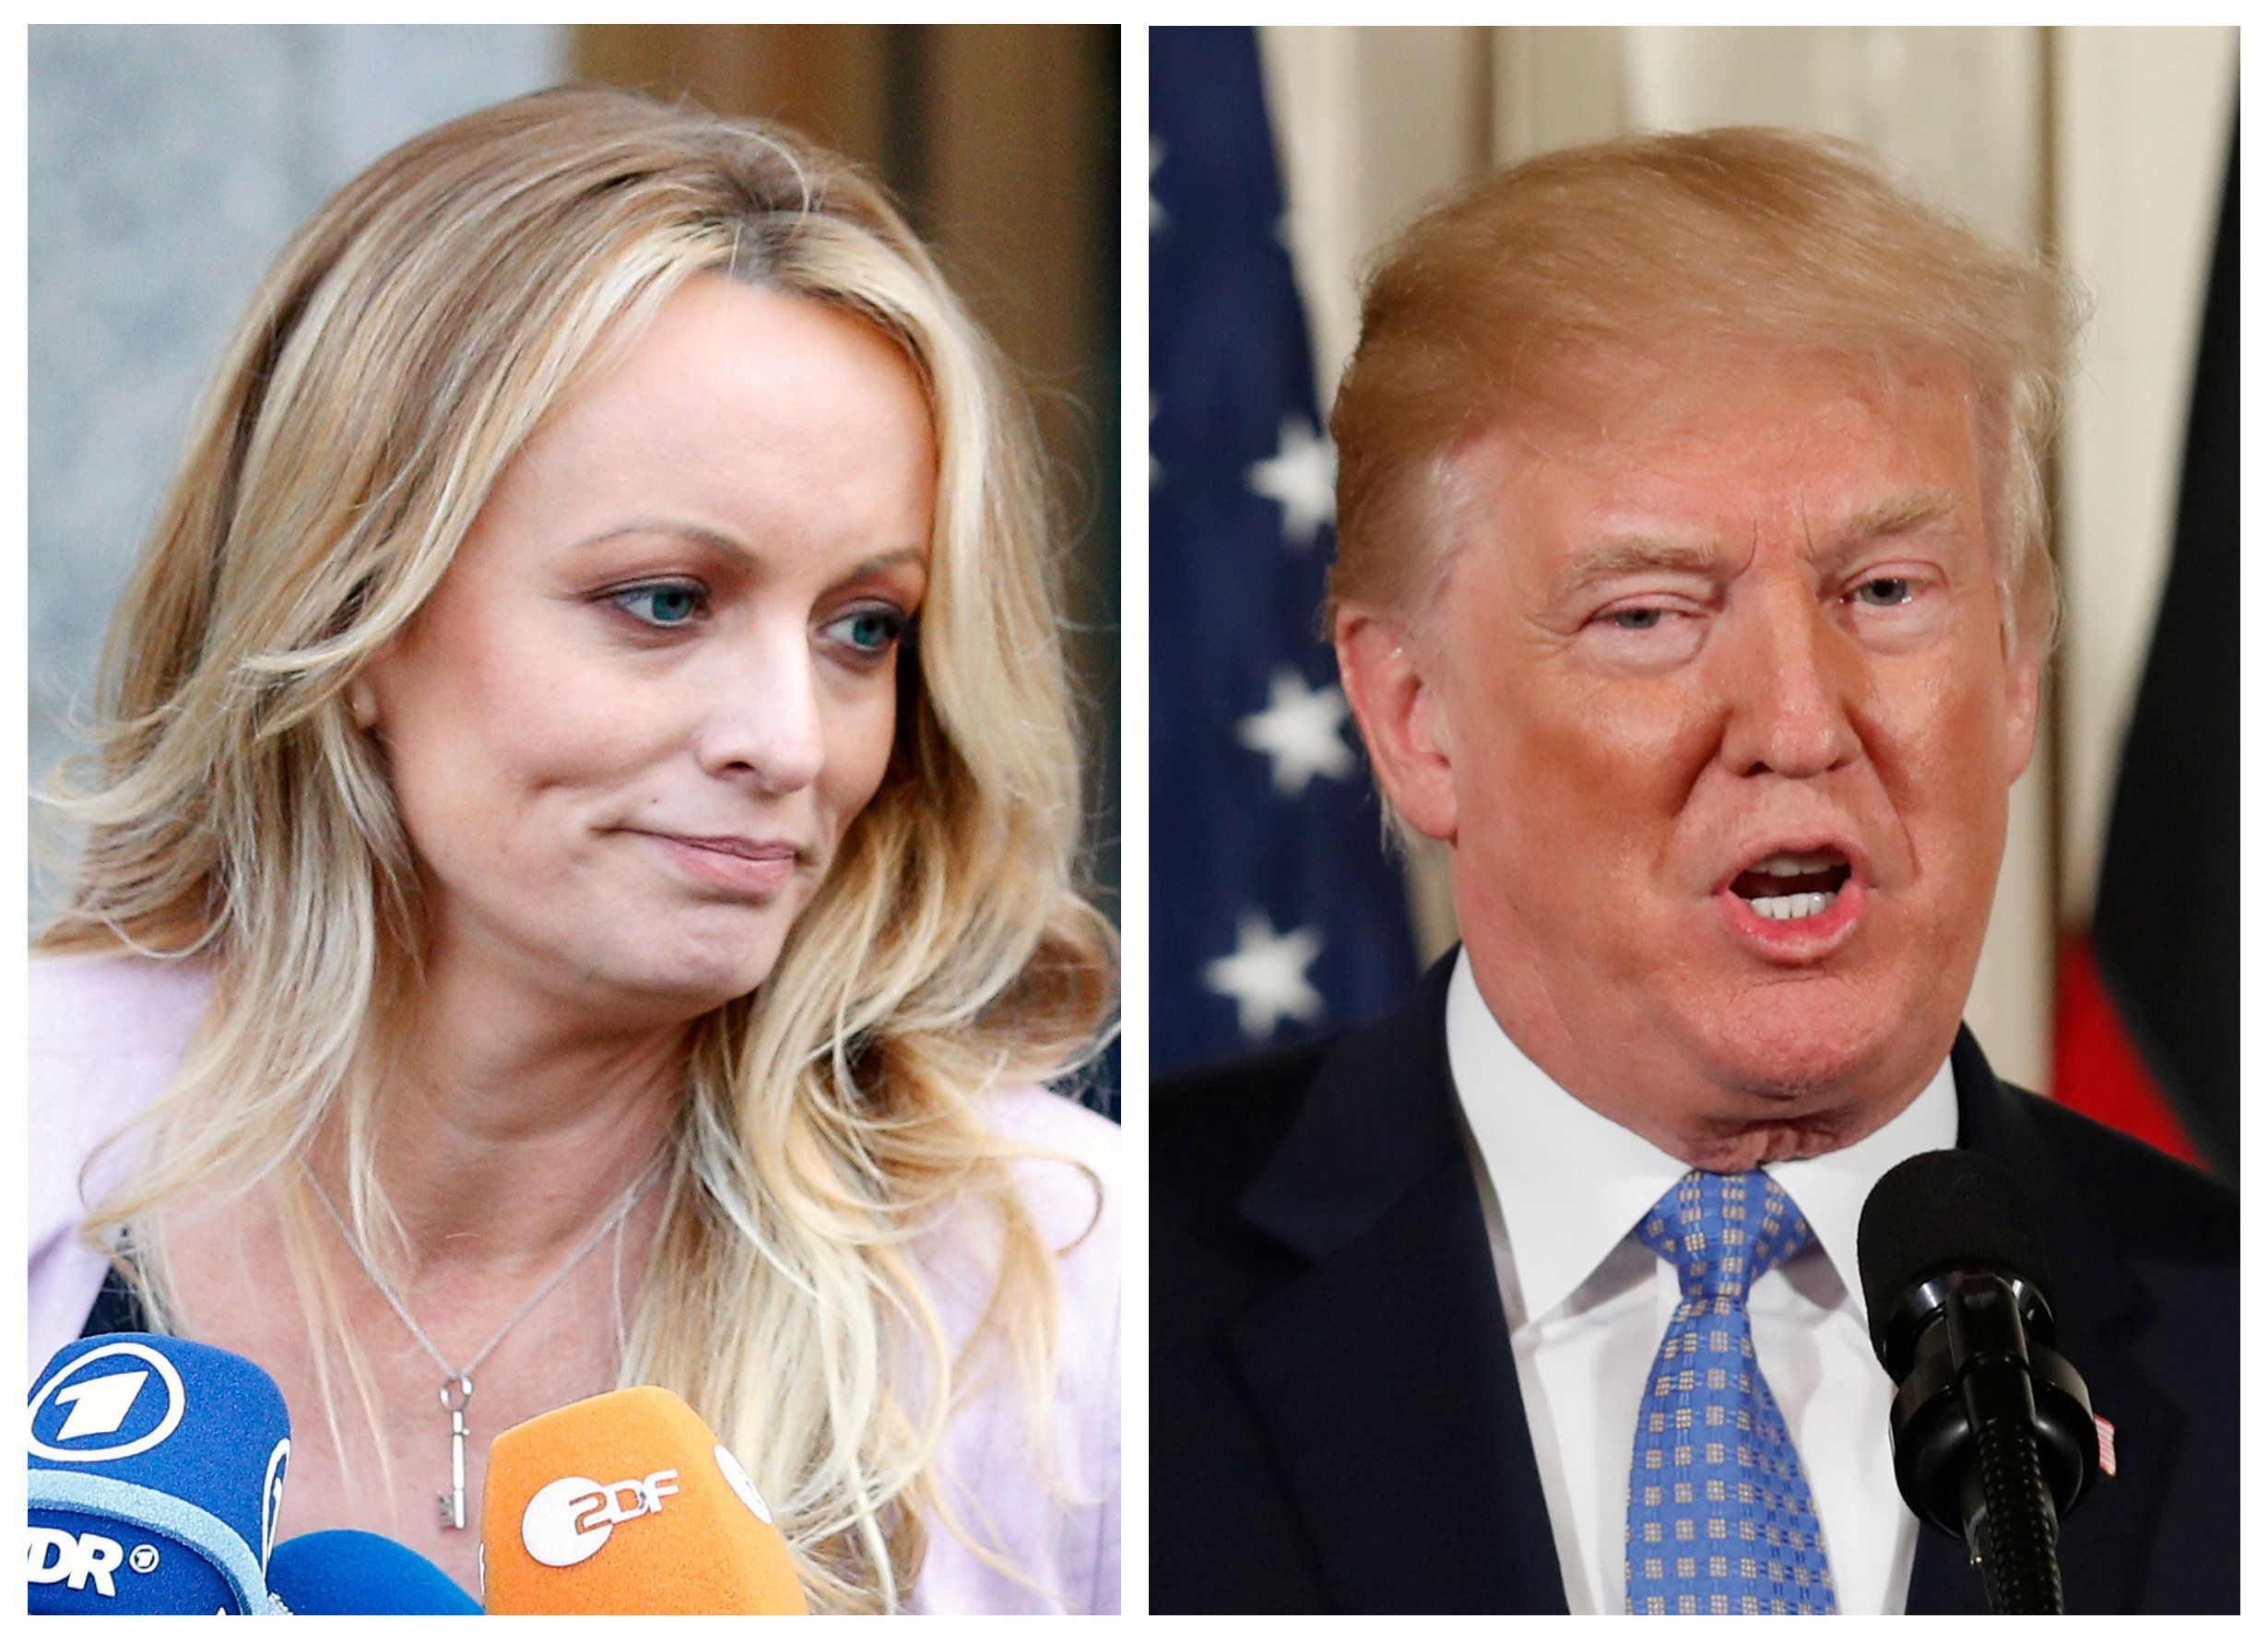 Donald Trump Repaid Lawyer's 'Hush Money' To Stormy Daniels, Rudy Giuliani Says